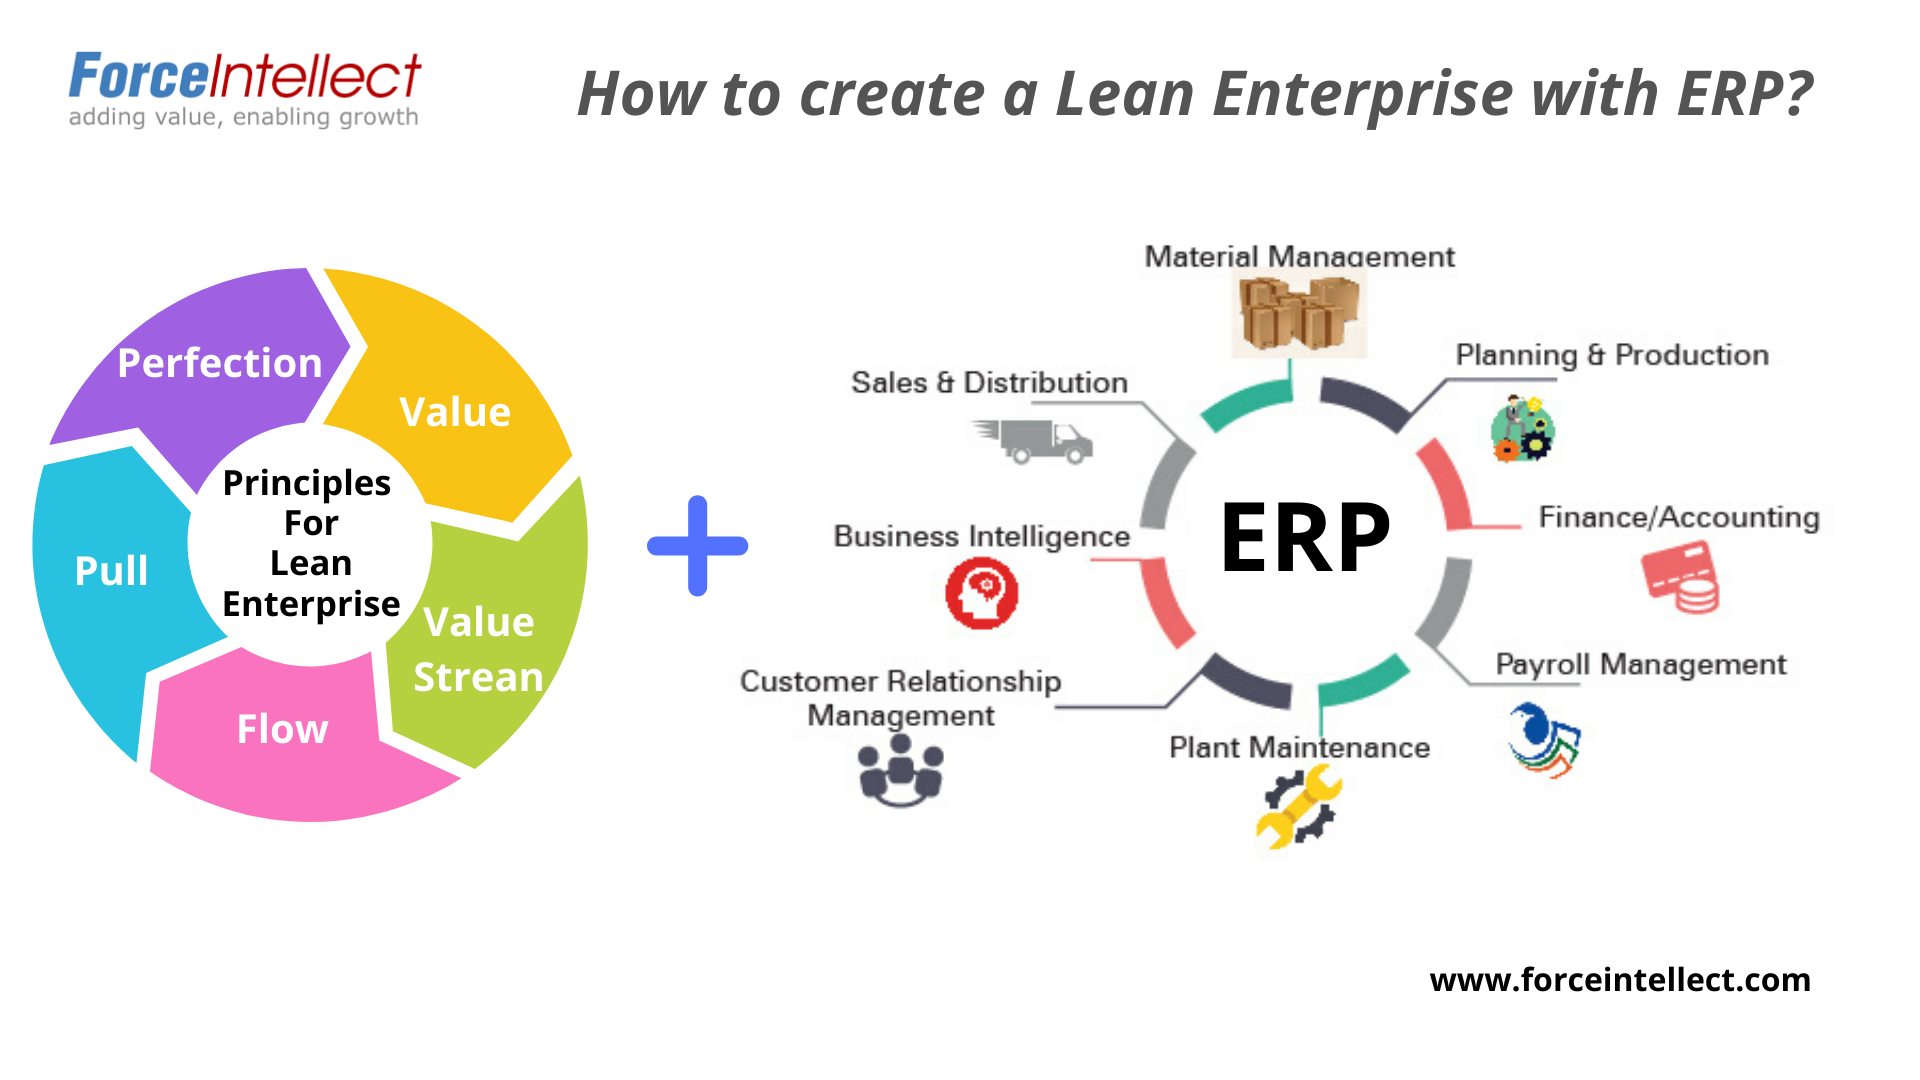 How ERP helps implement Lean principles to eliminate waste